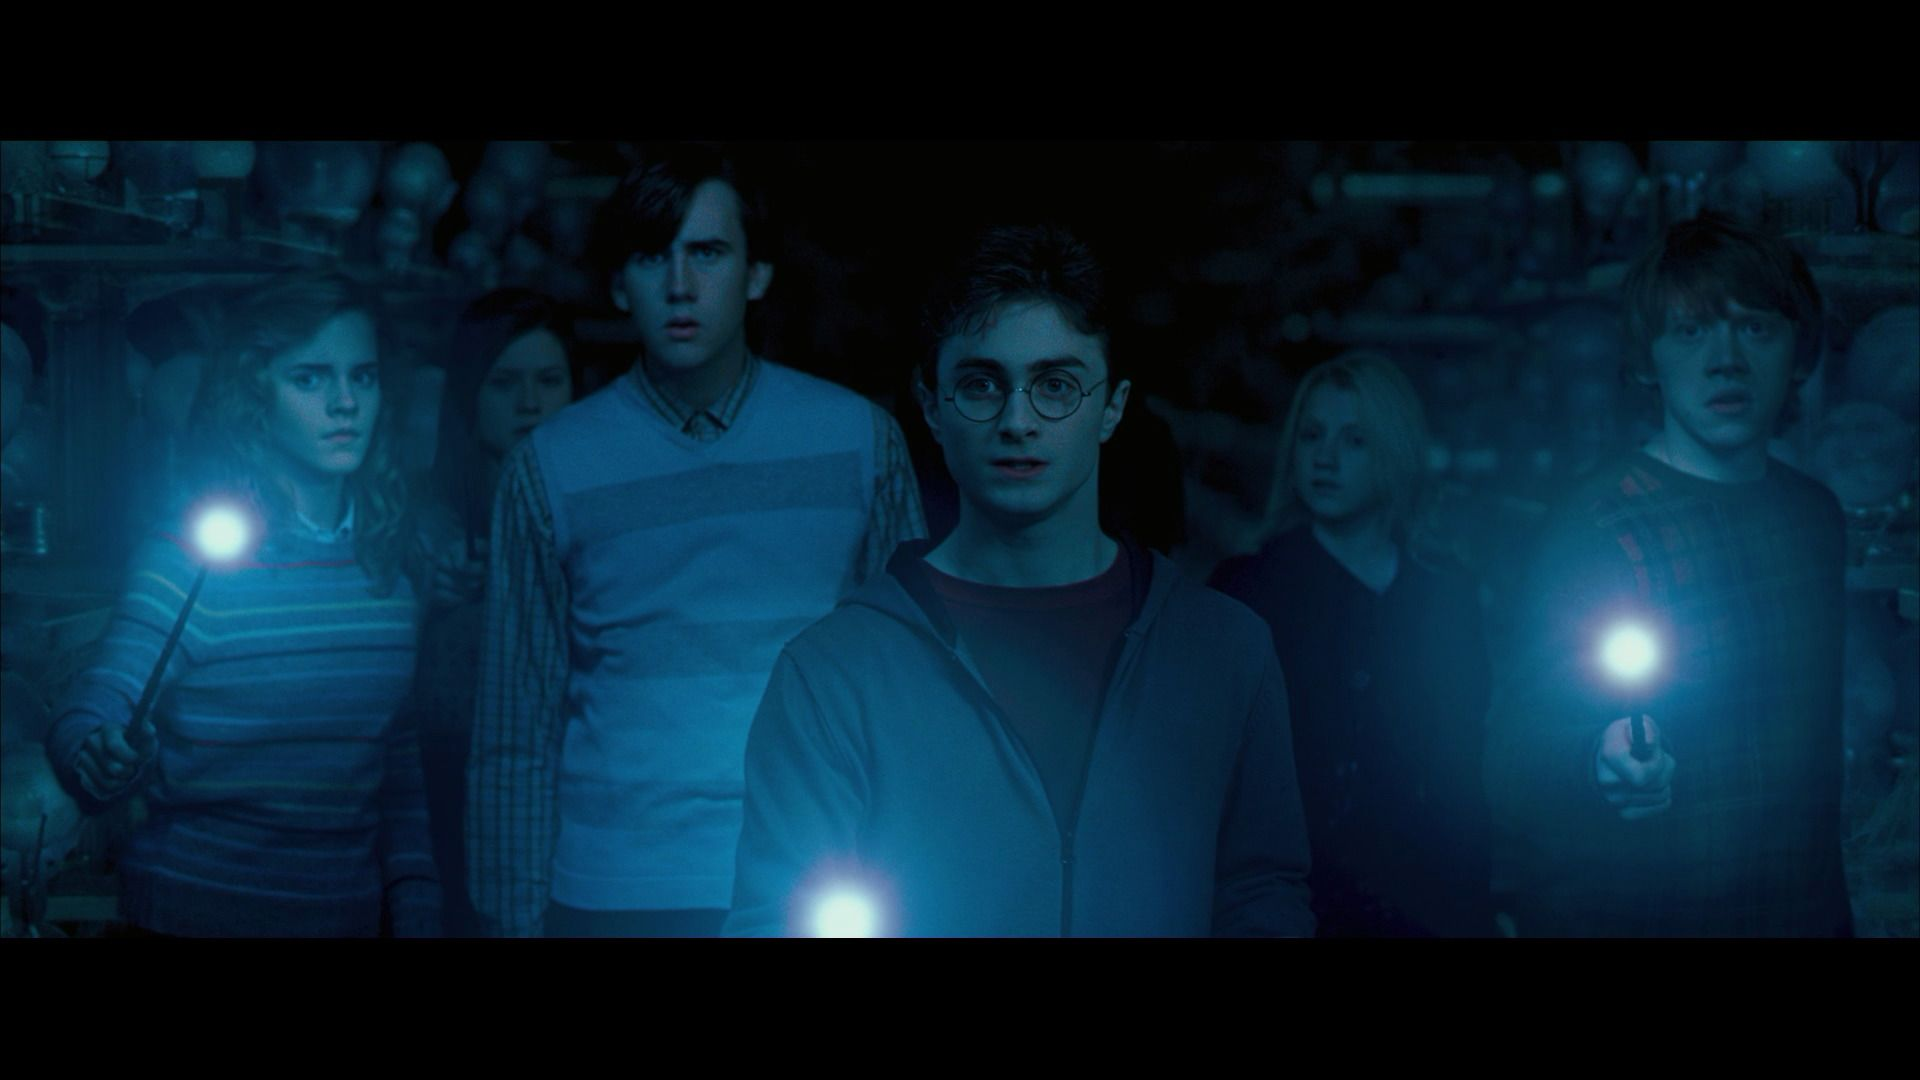 Harry Potter And The Order Of The Phoenix 2007 Movie Screencaps Com Harry Potter Harry Potter